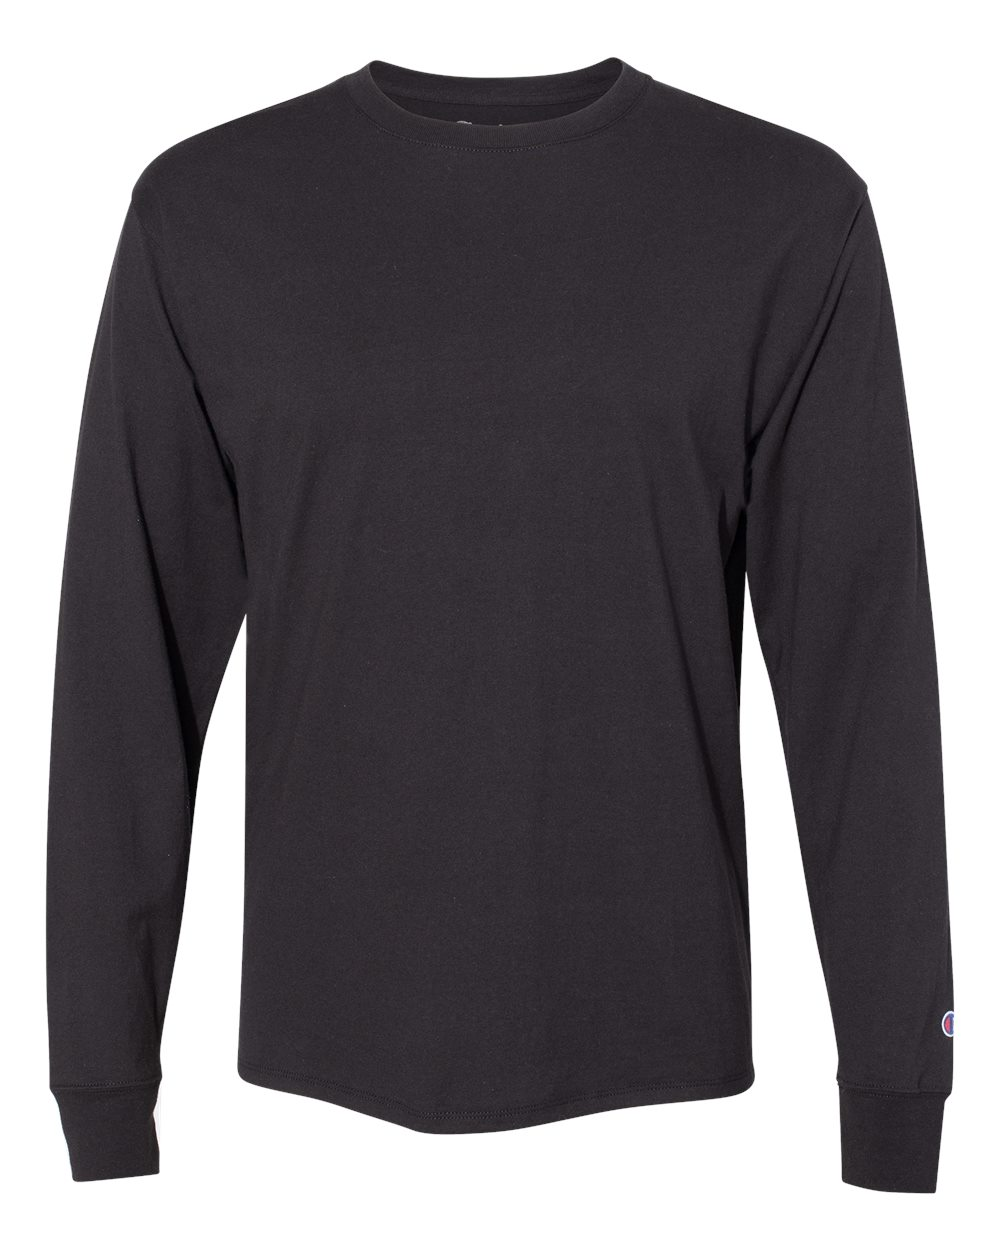 Picture of CHAMPION Long-Sleeve Ringspun Cotton T-Shirt